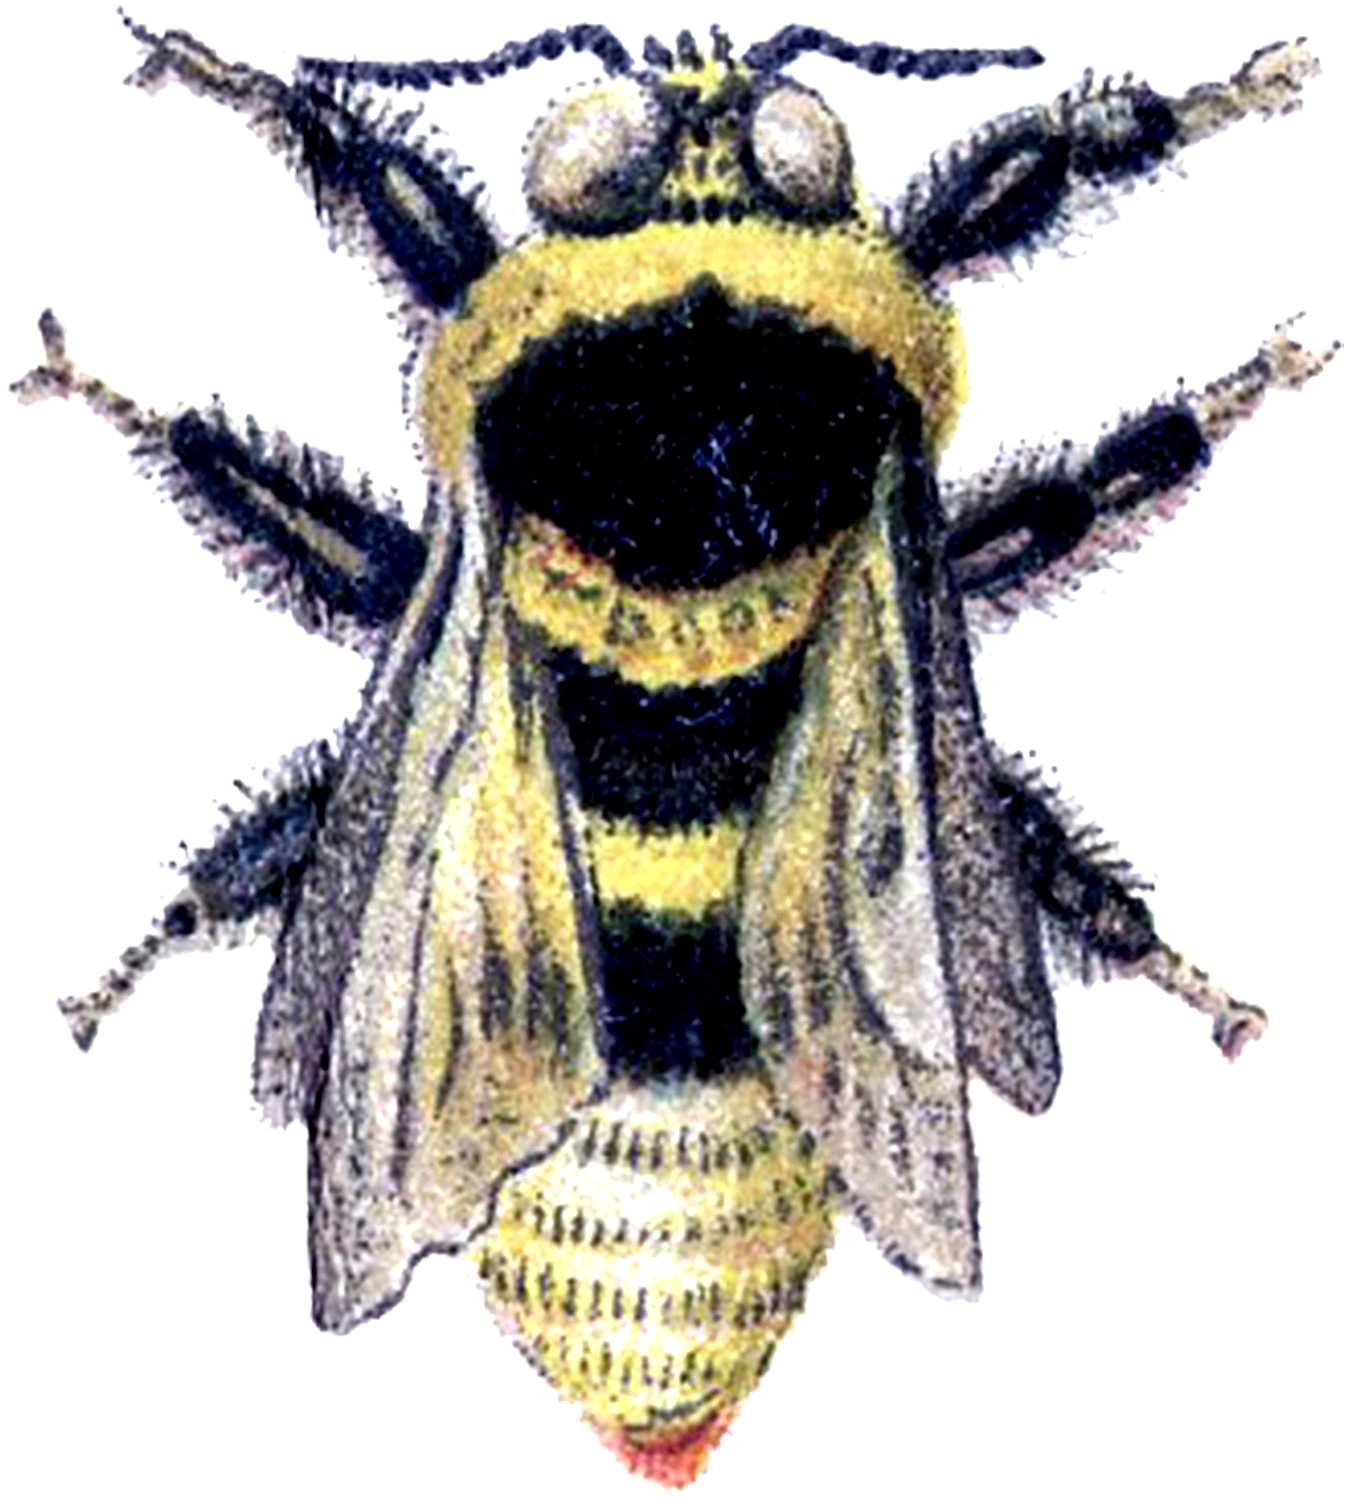 Bees clipart victorian. Wonderful vintage bumblebee image